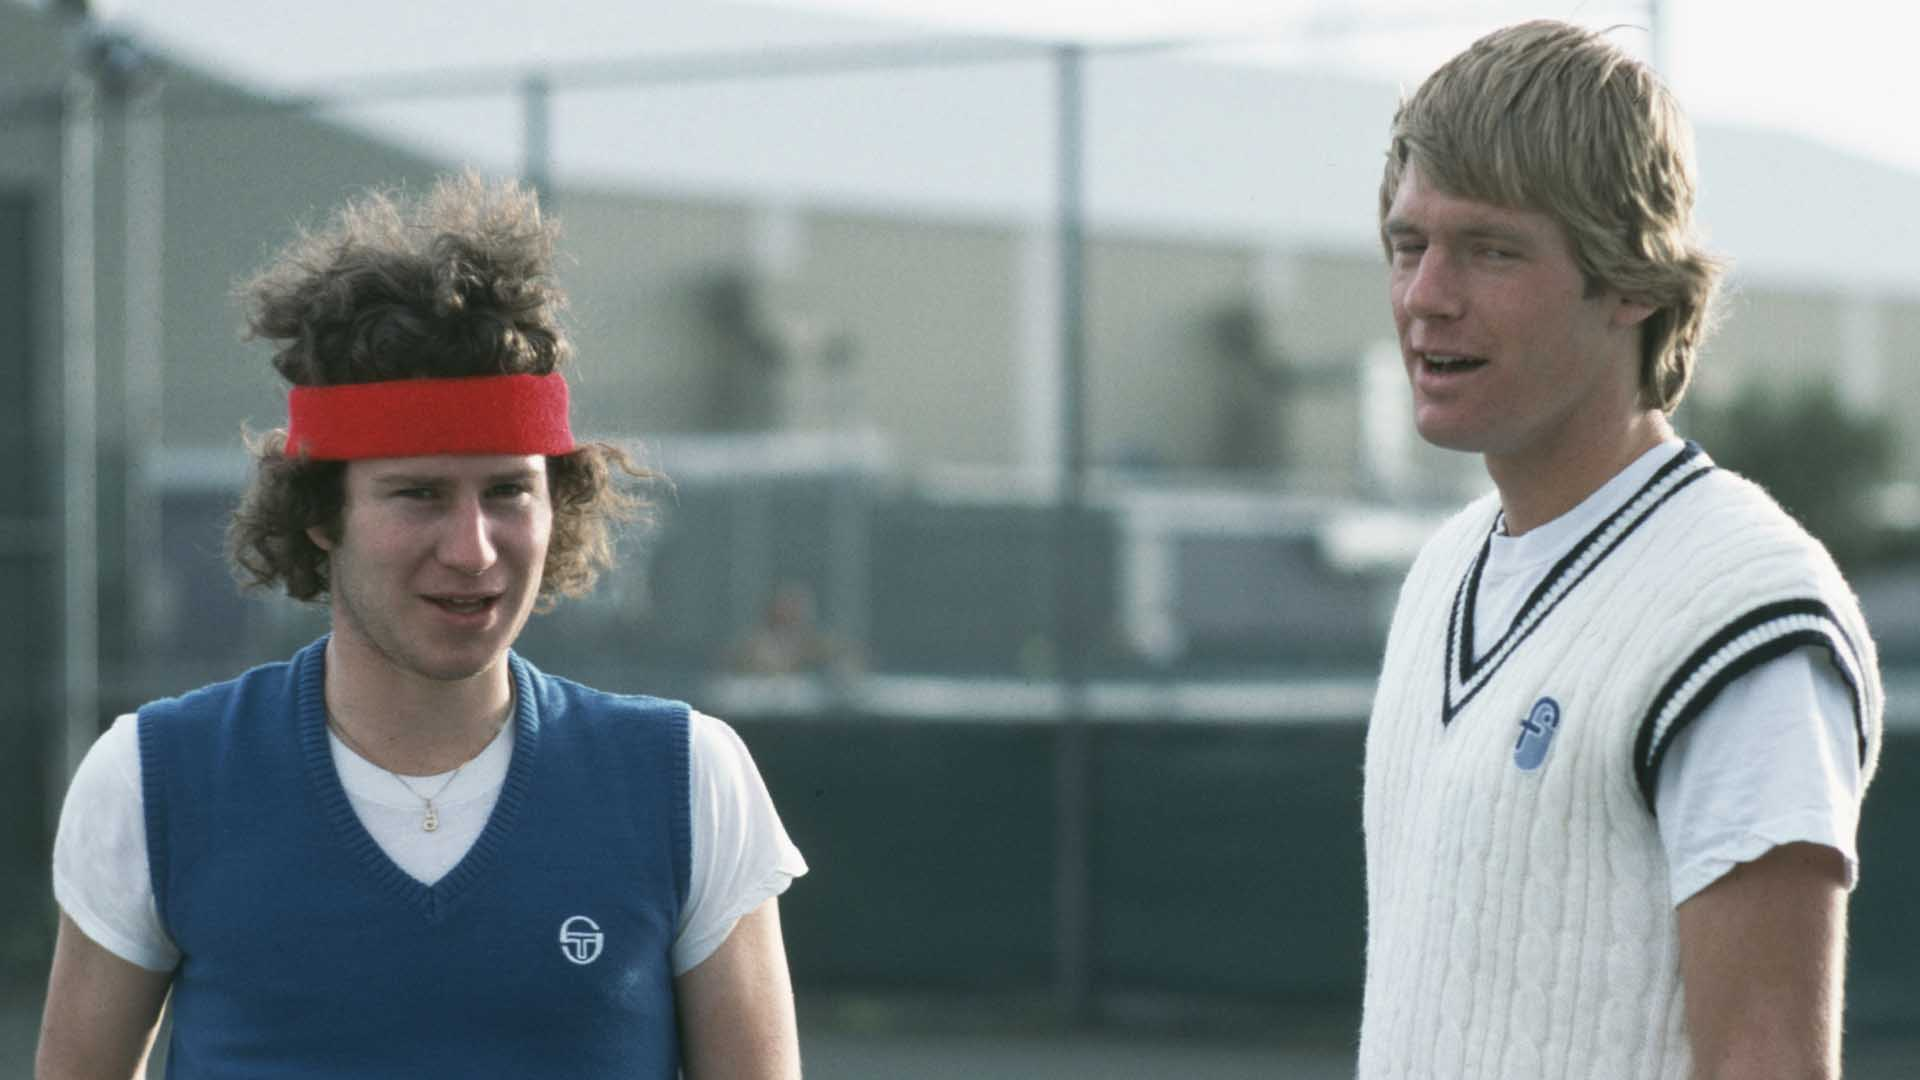 <a href='/en/players/john-mcenroe/m047/overview'>John McEnroe</a> and <a href='/en/players/peter-fleming/f030/overview'>Peter Fleming</a> won seven consecutive <a href='/en/tournaments/nitto-atp-finals/605/overview'>Nitto ATP Finals</a> trophies from 1978 to 1984.